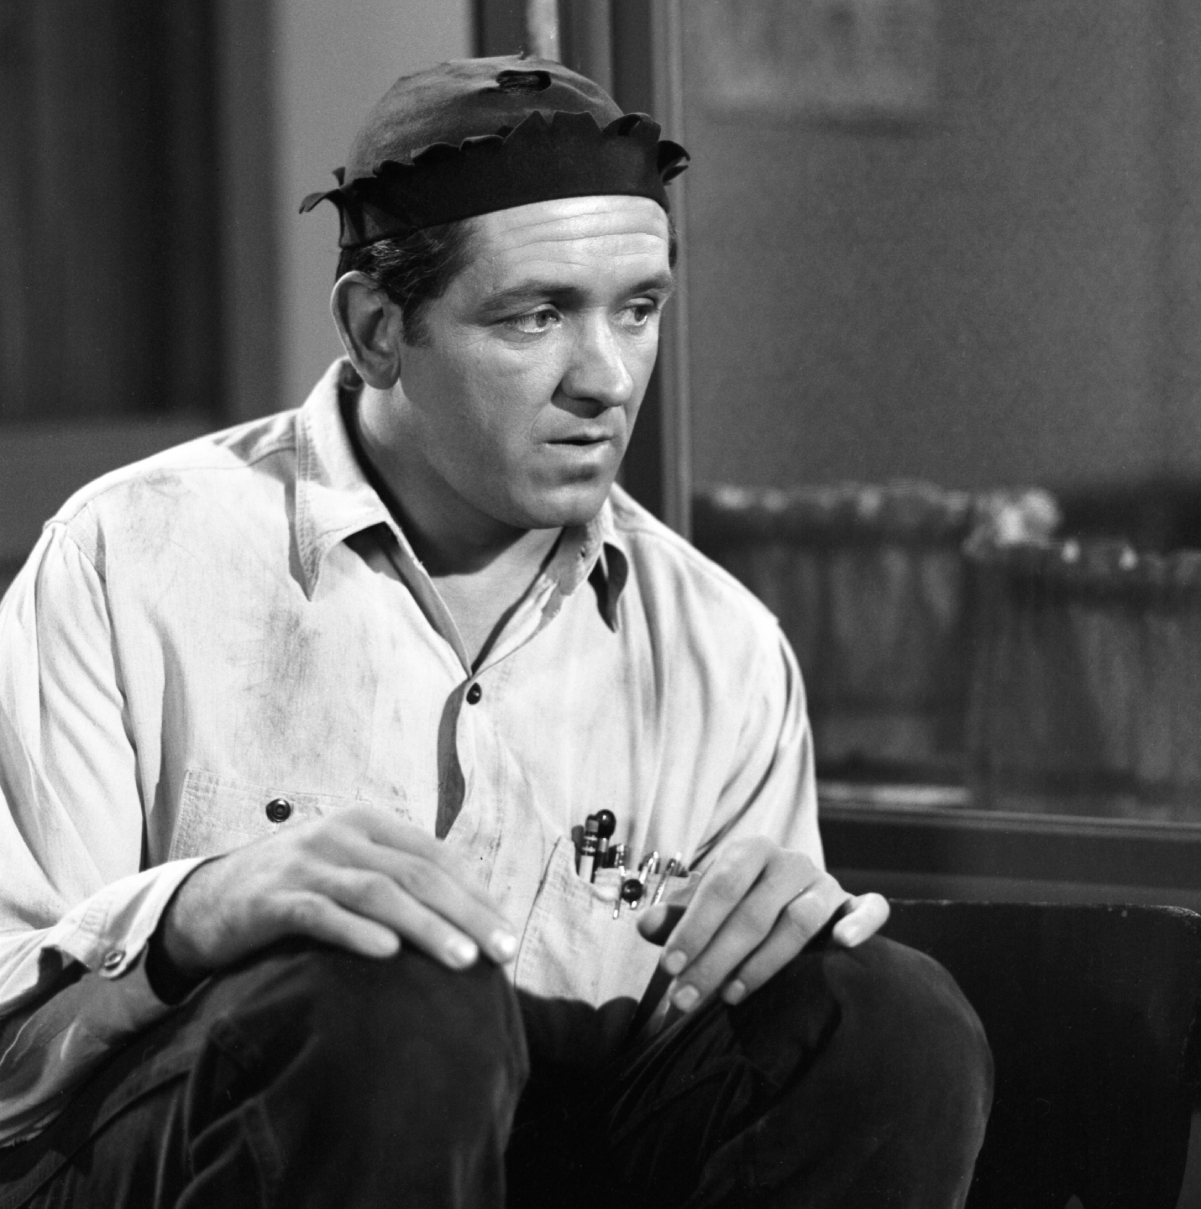 Actor George Lindsey as Goober Pyle in 'The Andy Griffith Show'